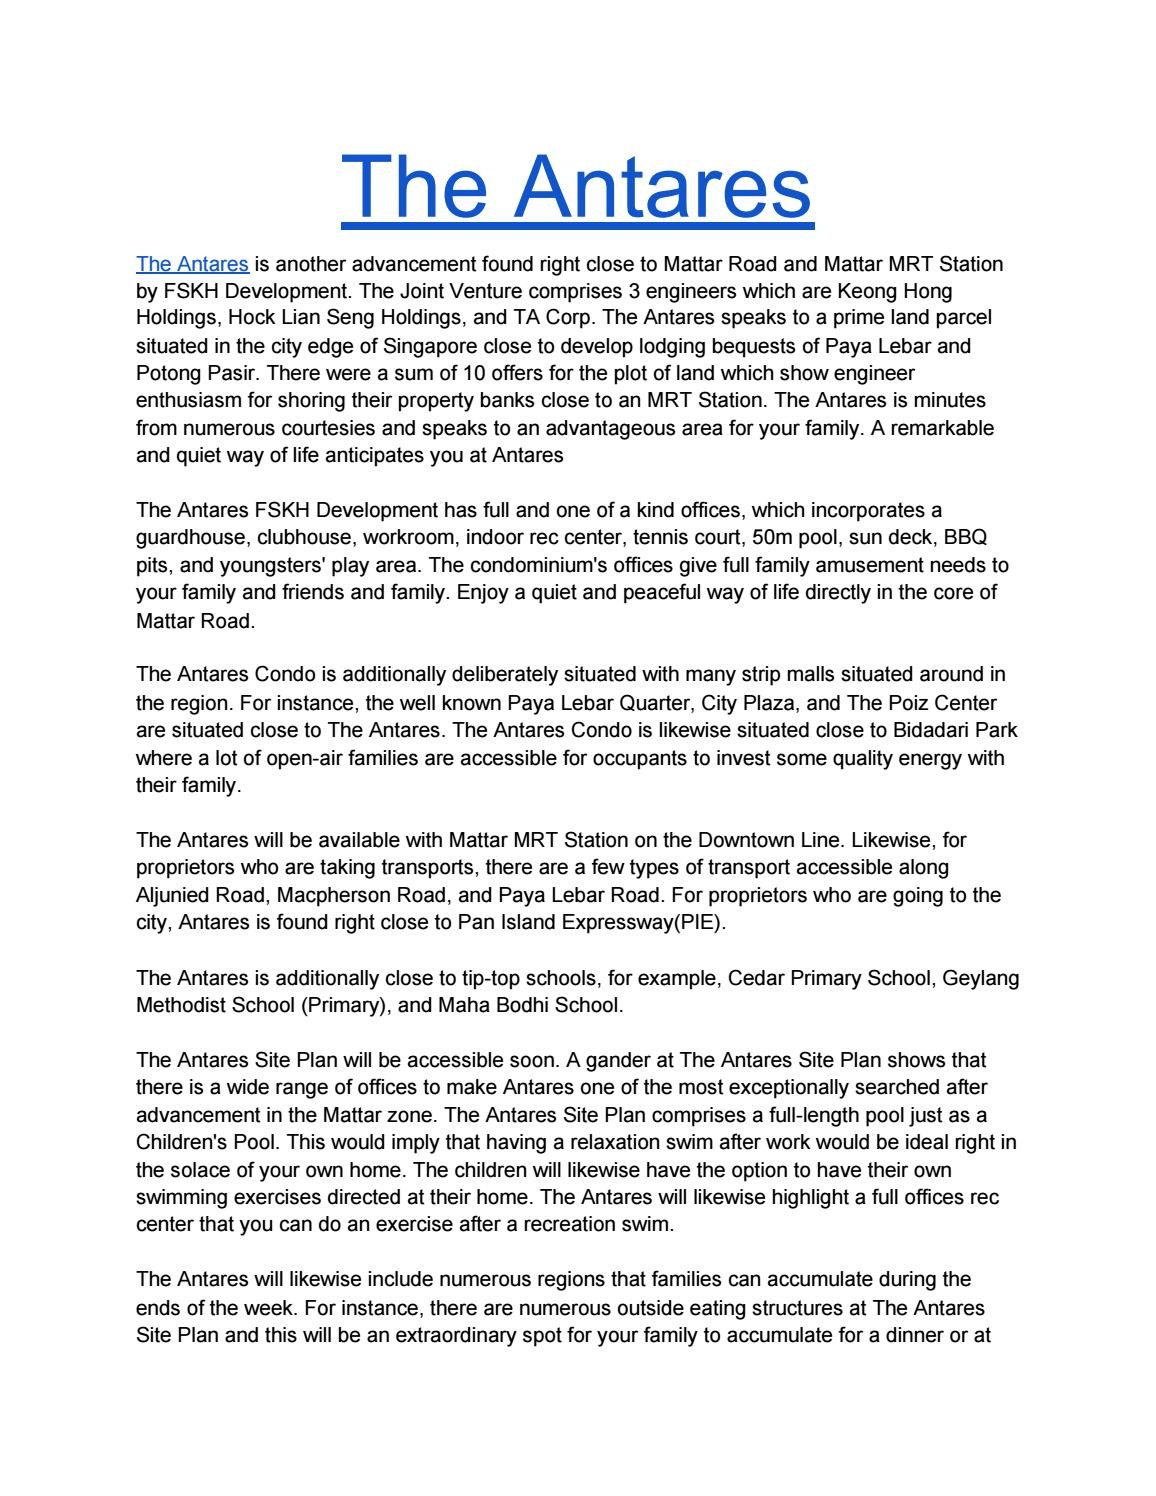 The Antares By Enamul Haque Issuu